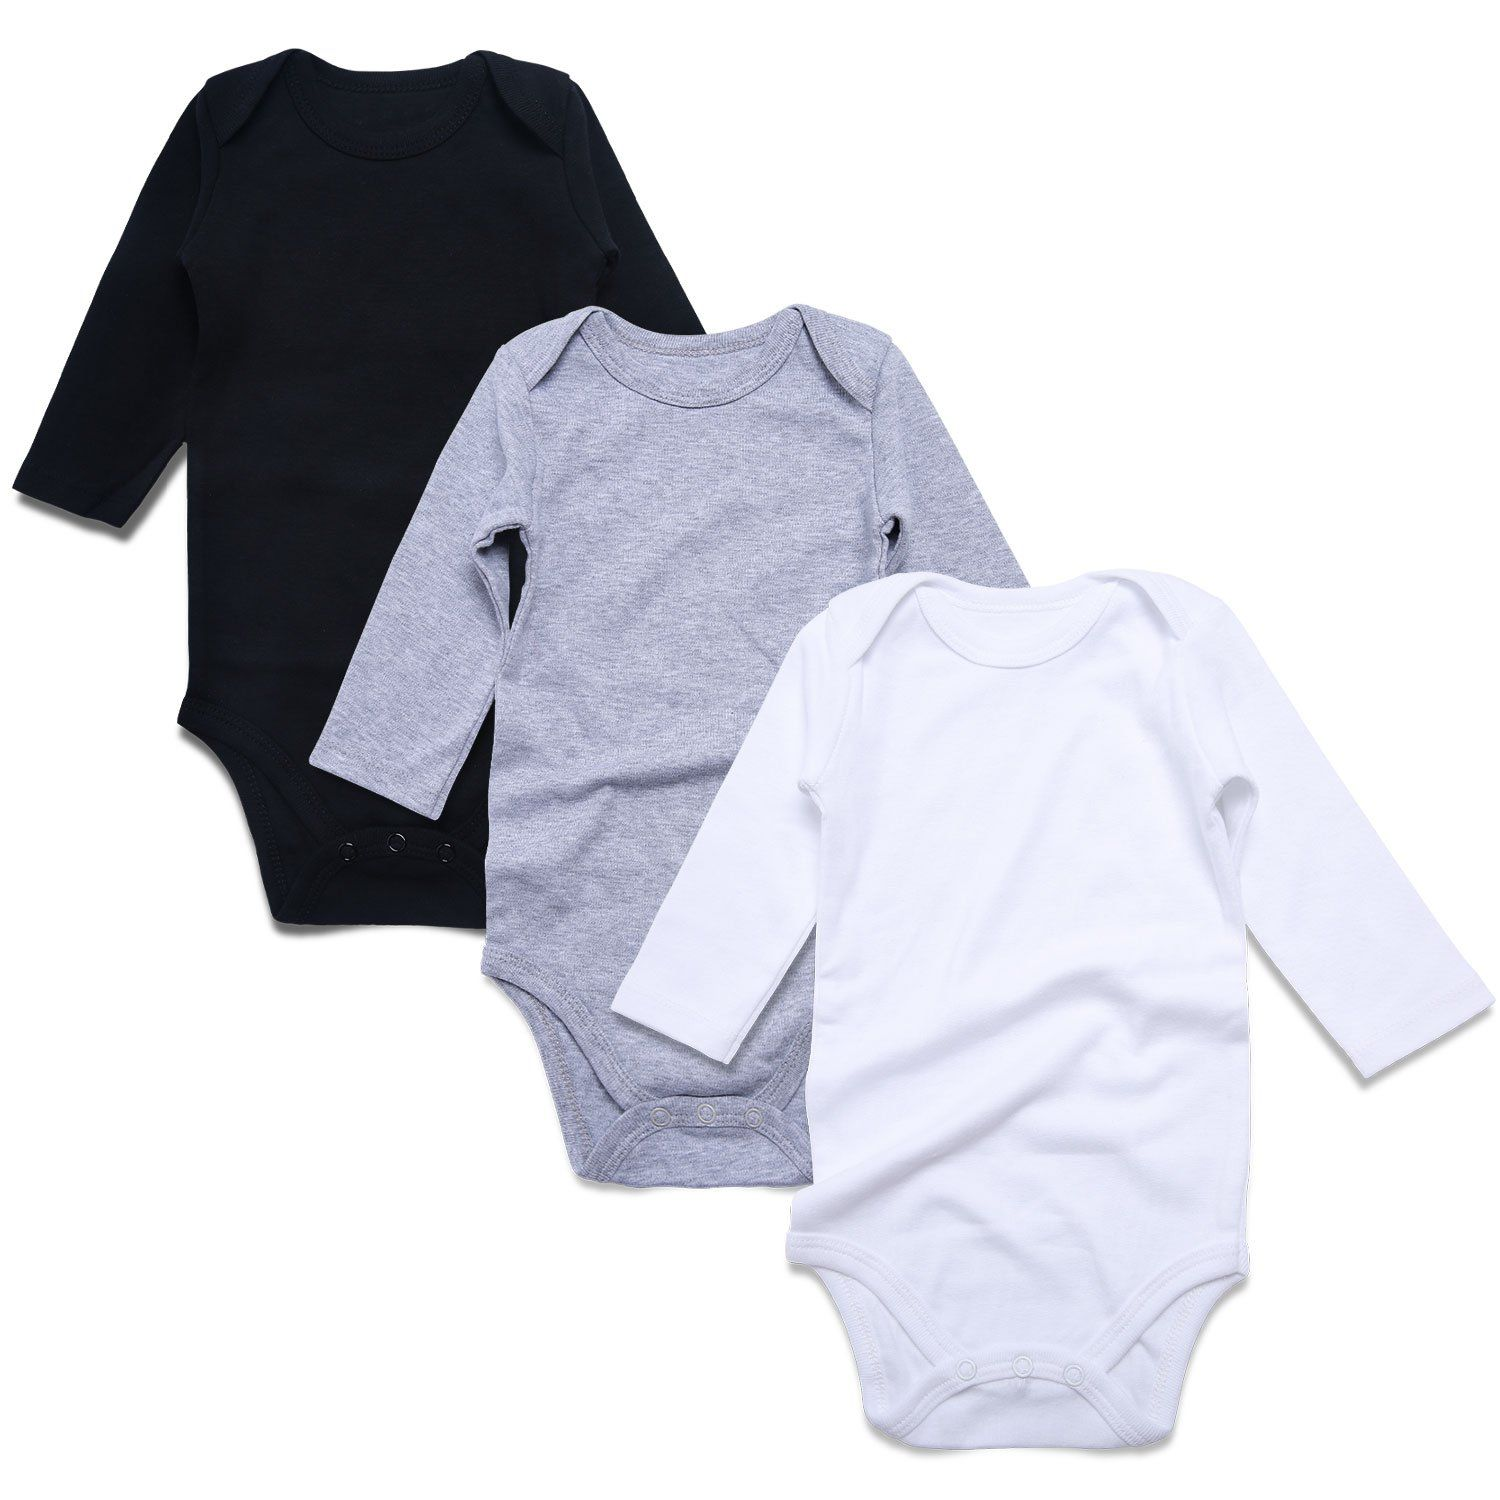 Romperinbox Place Uni Baby Bodysuits Cotton Boys Girls 0 24